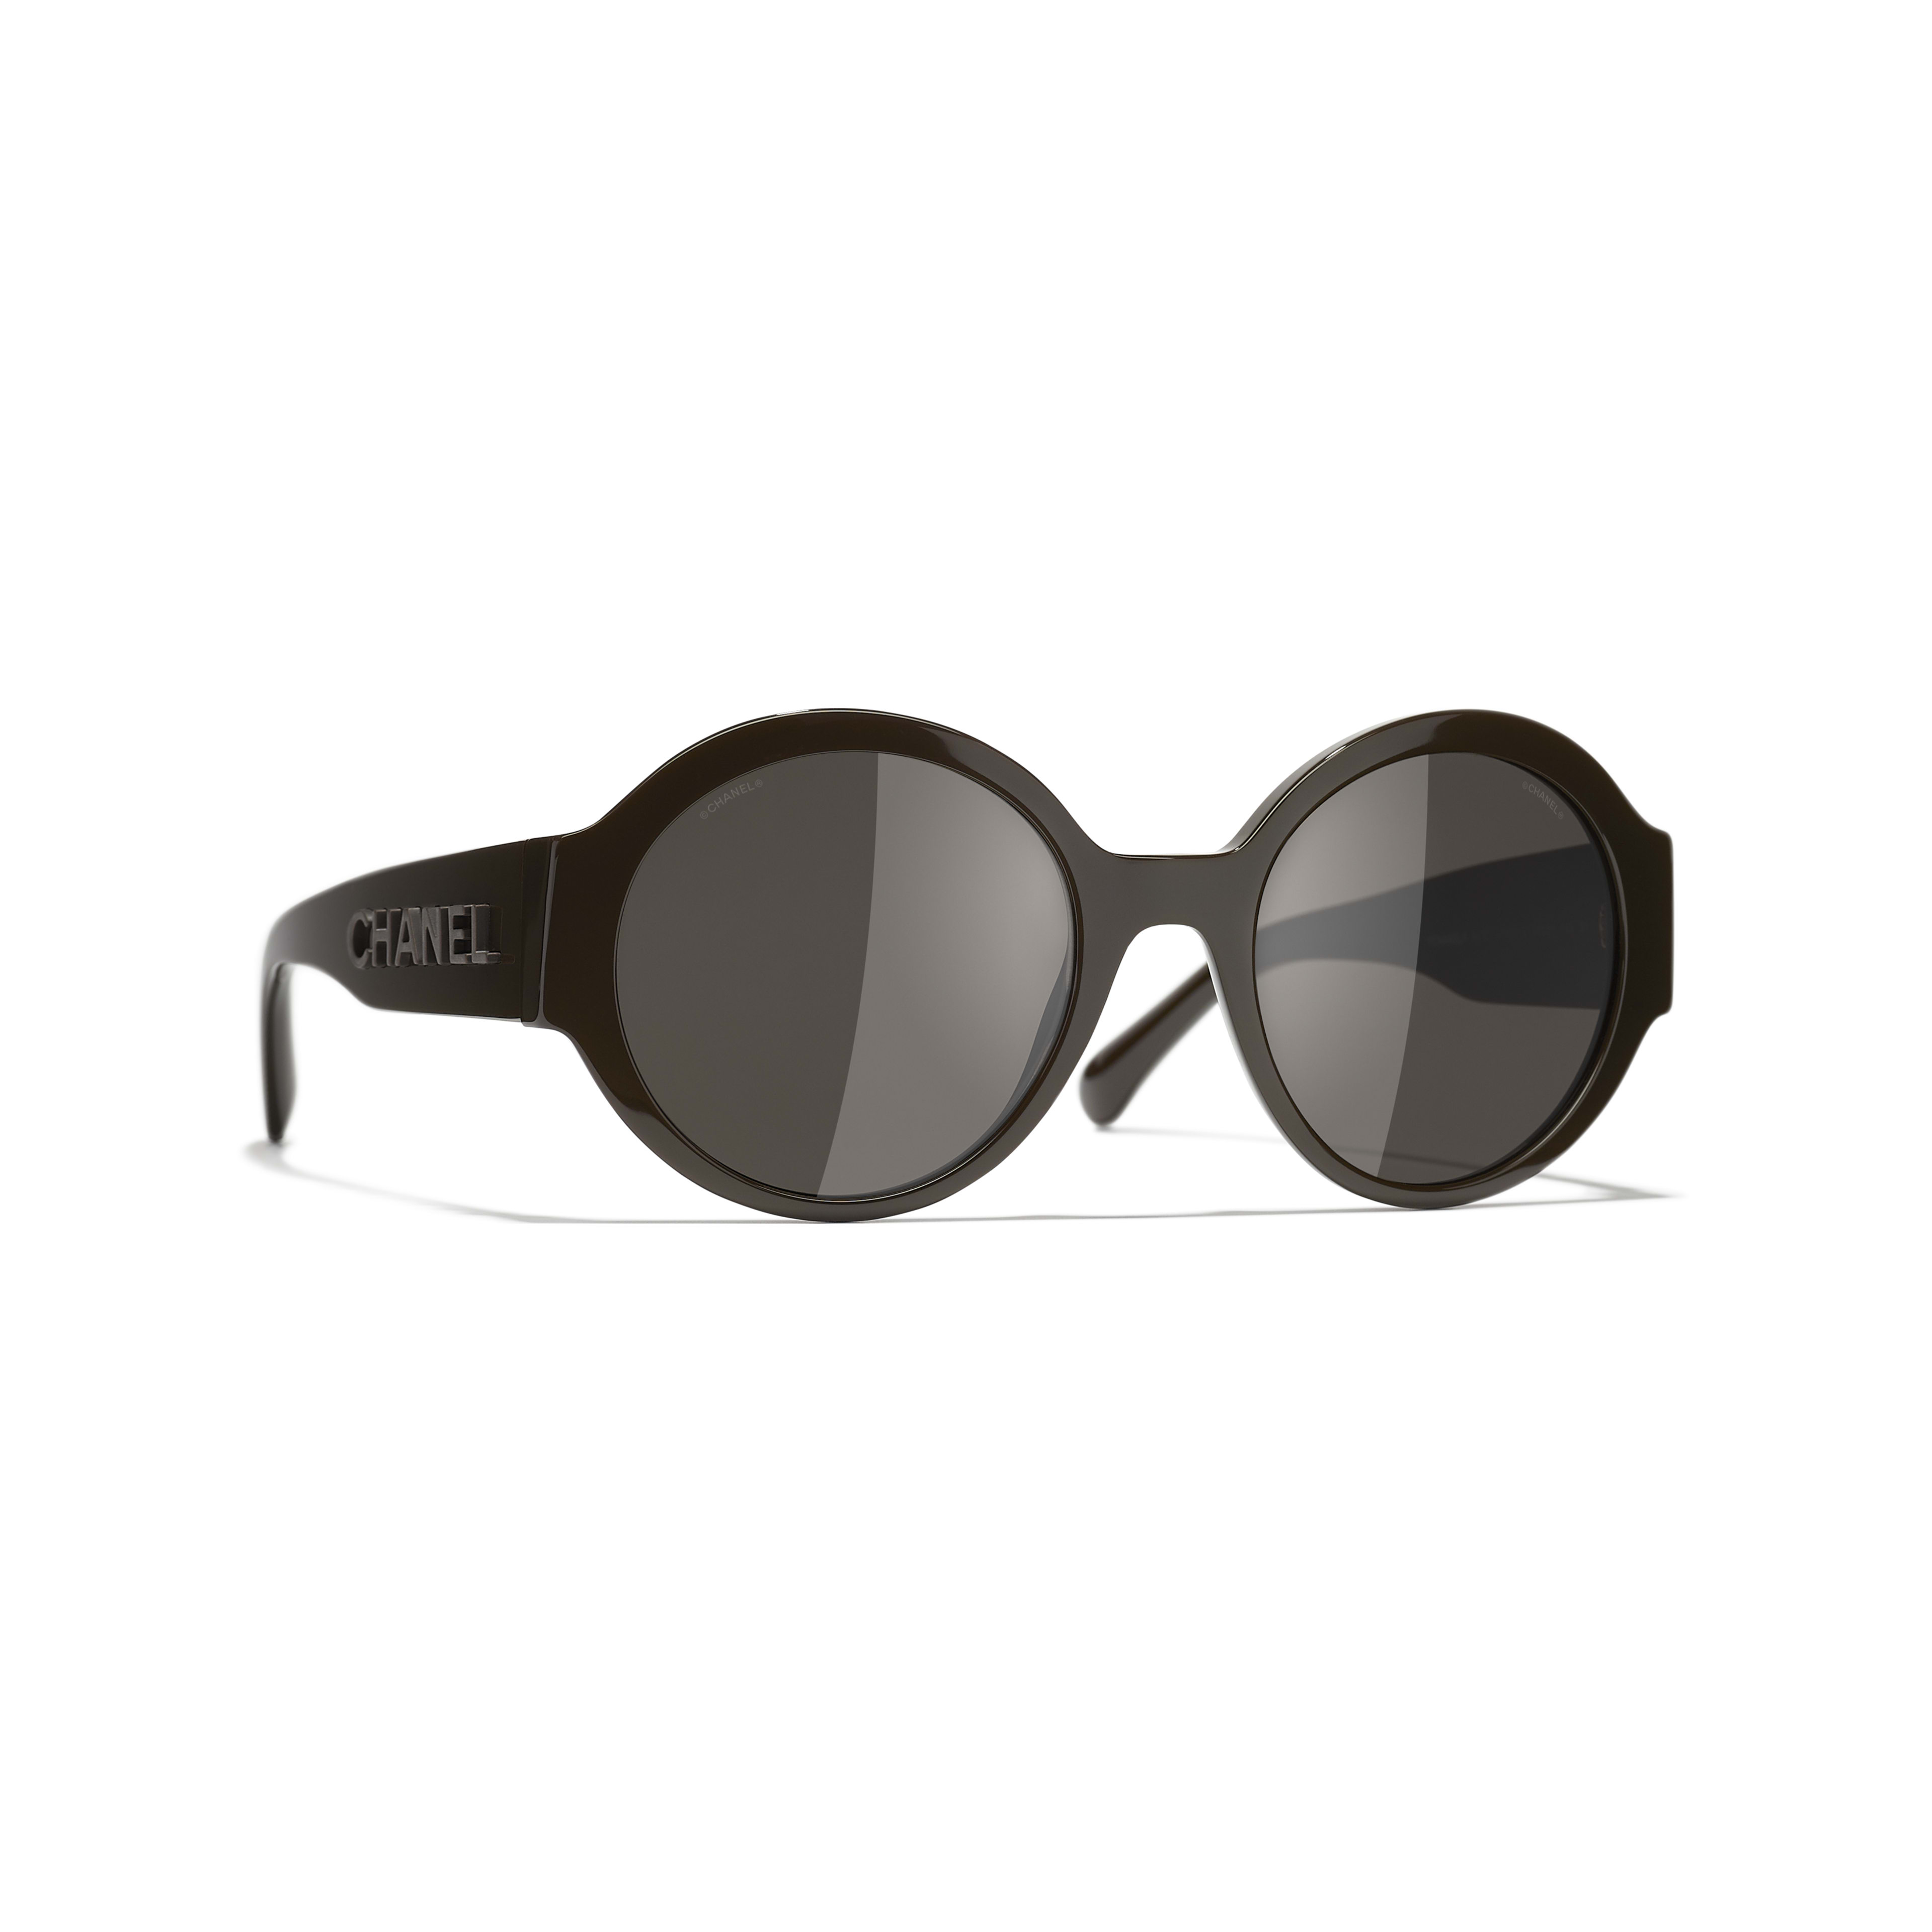 Round Sunglasses - Brown - Acetate - CHANEL - Default view - see standard sized version